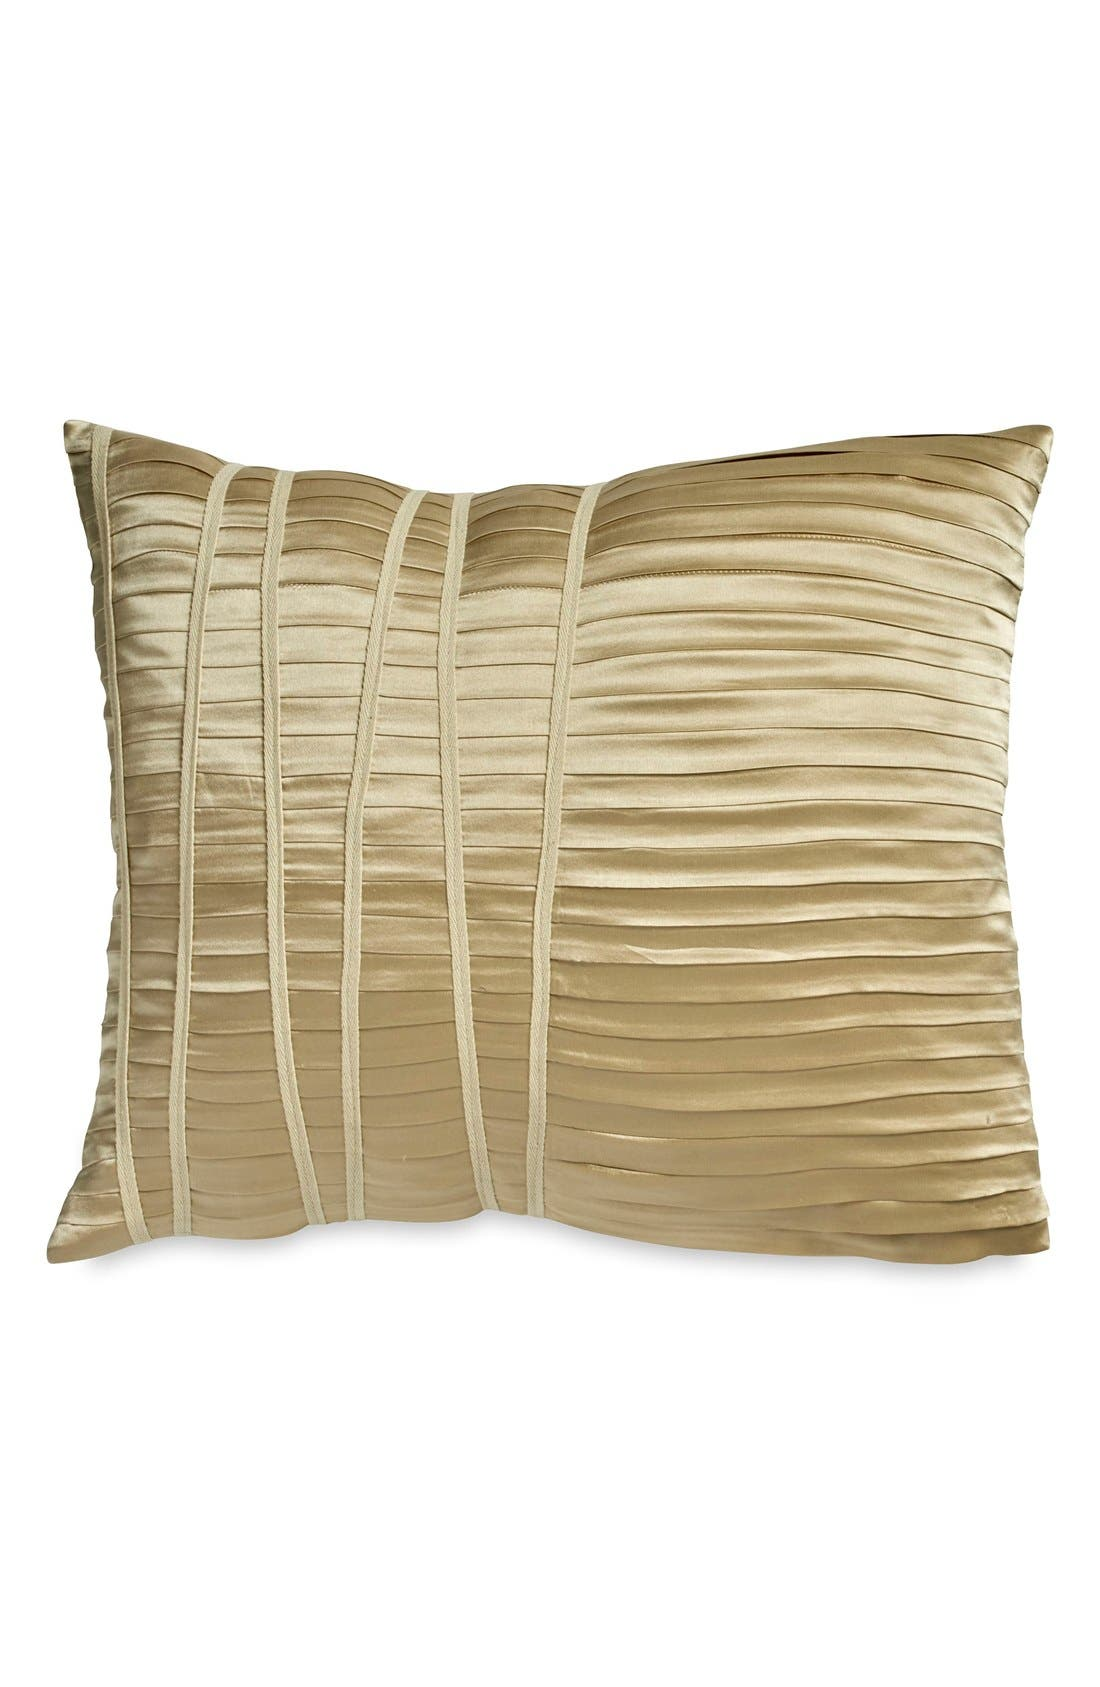 Donna Karan Collection 'Reflection' Accent Pillow,                         Main,                         color, GOLD DUST